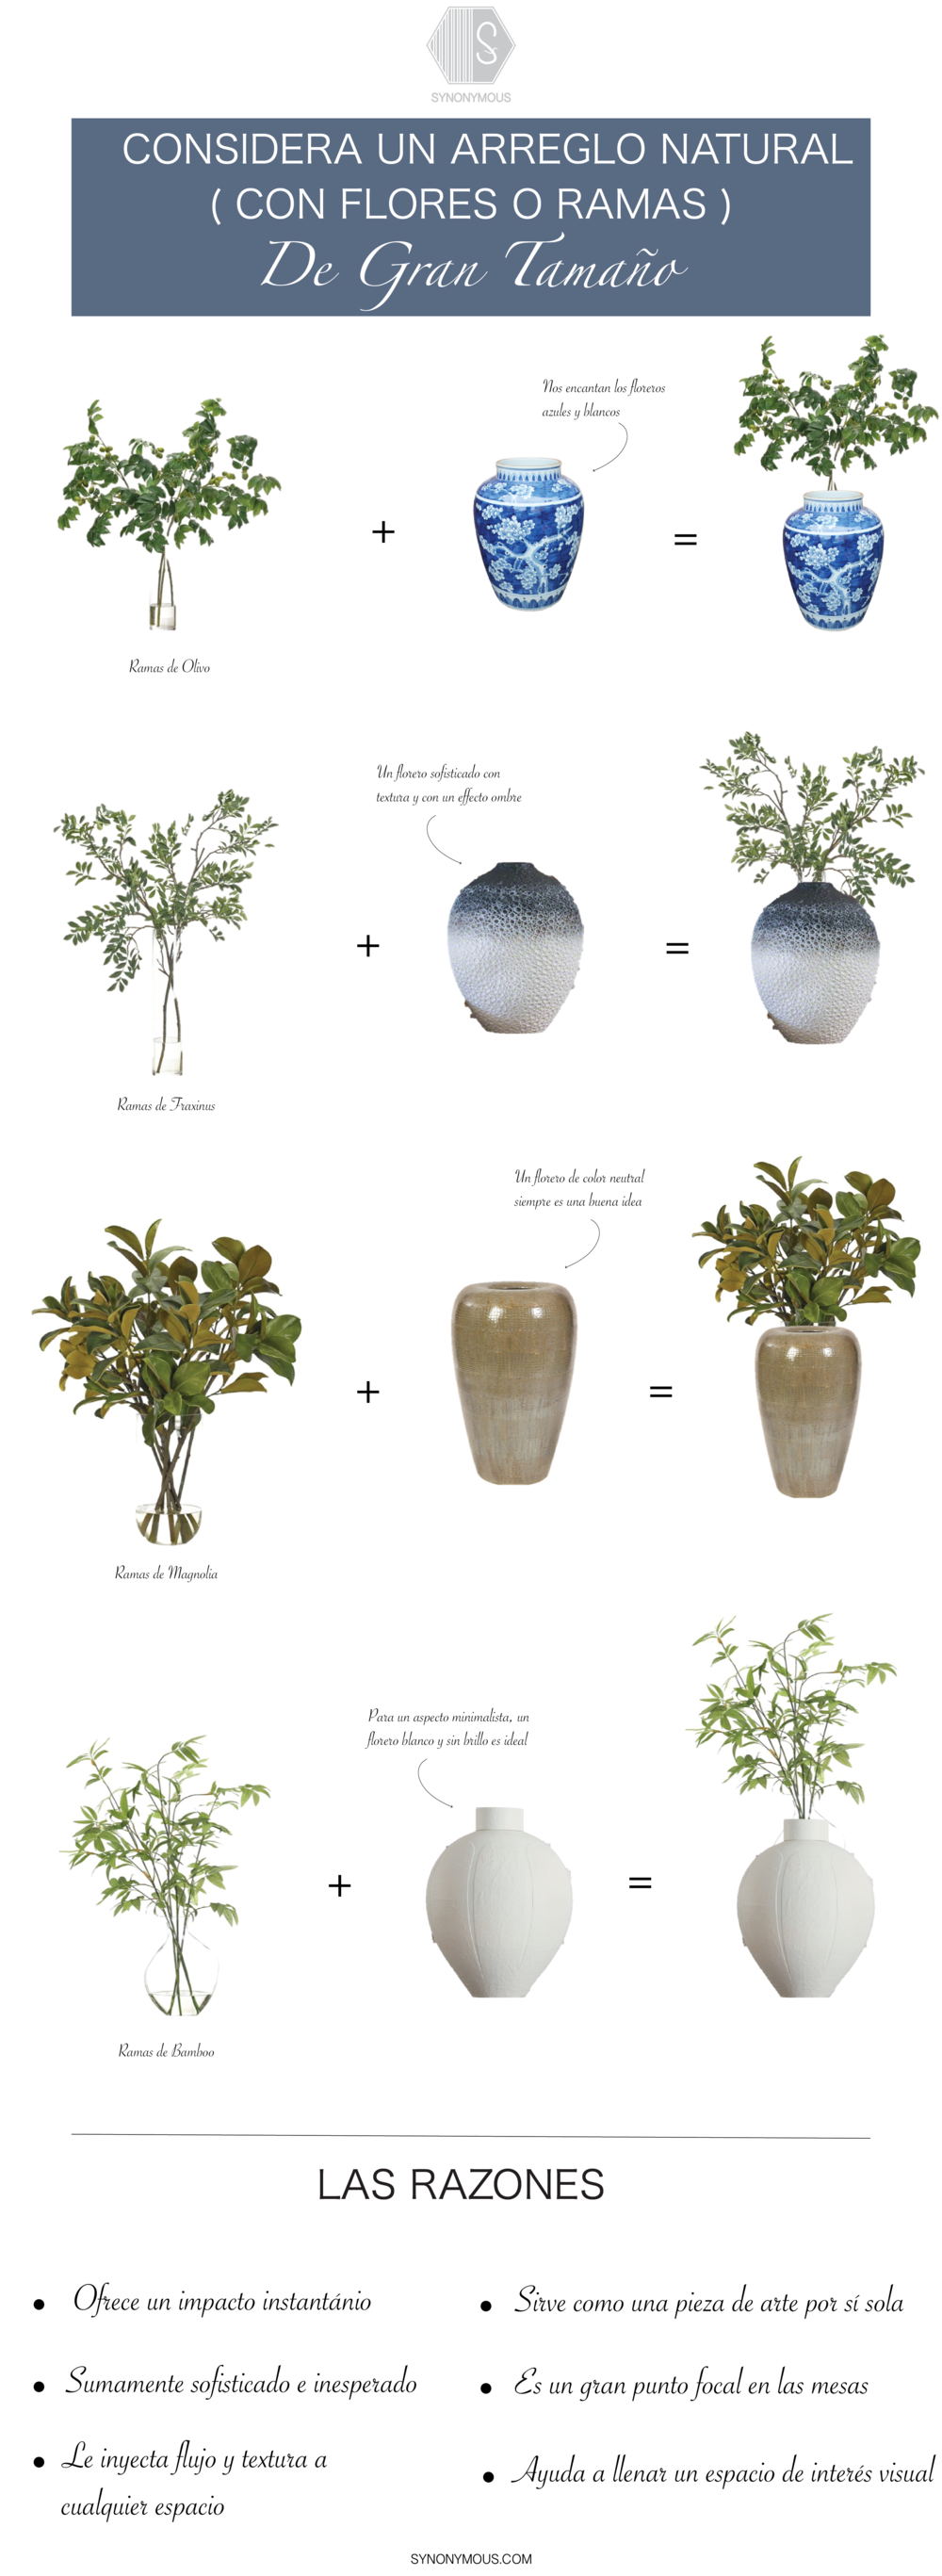 Design Diary: Oversized Vases and Flower Arrangements - SYNONYMOUS